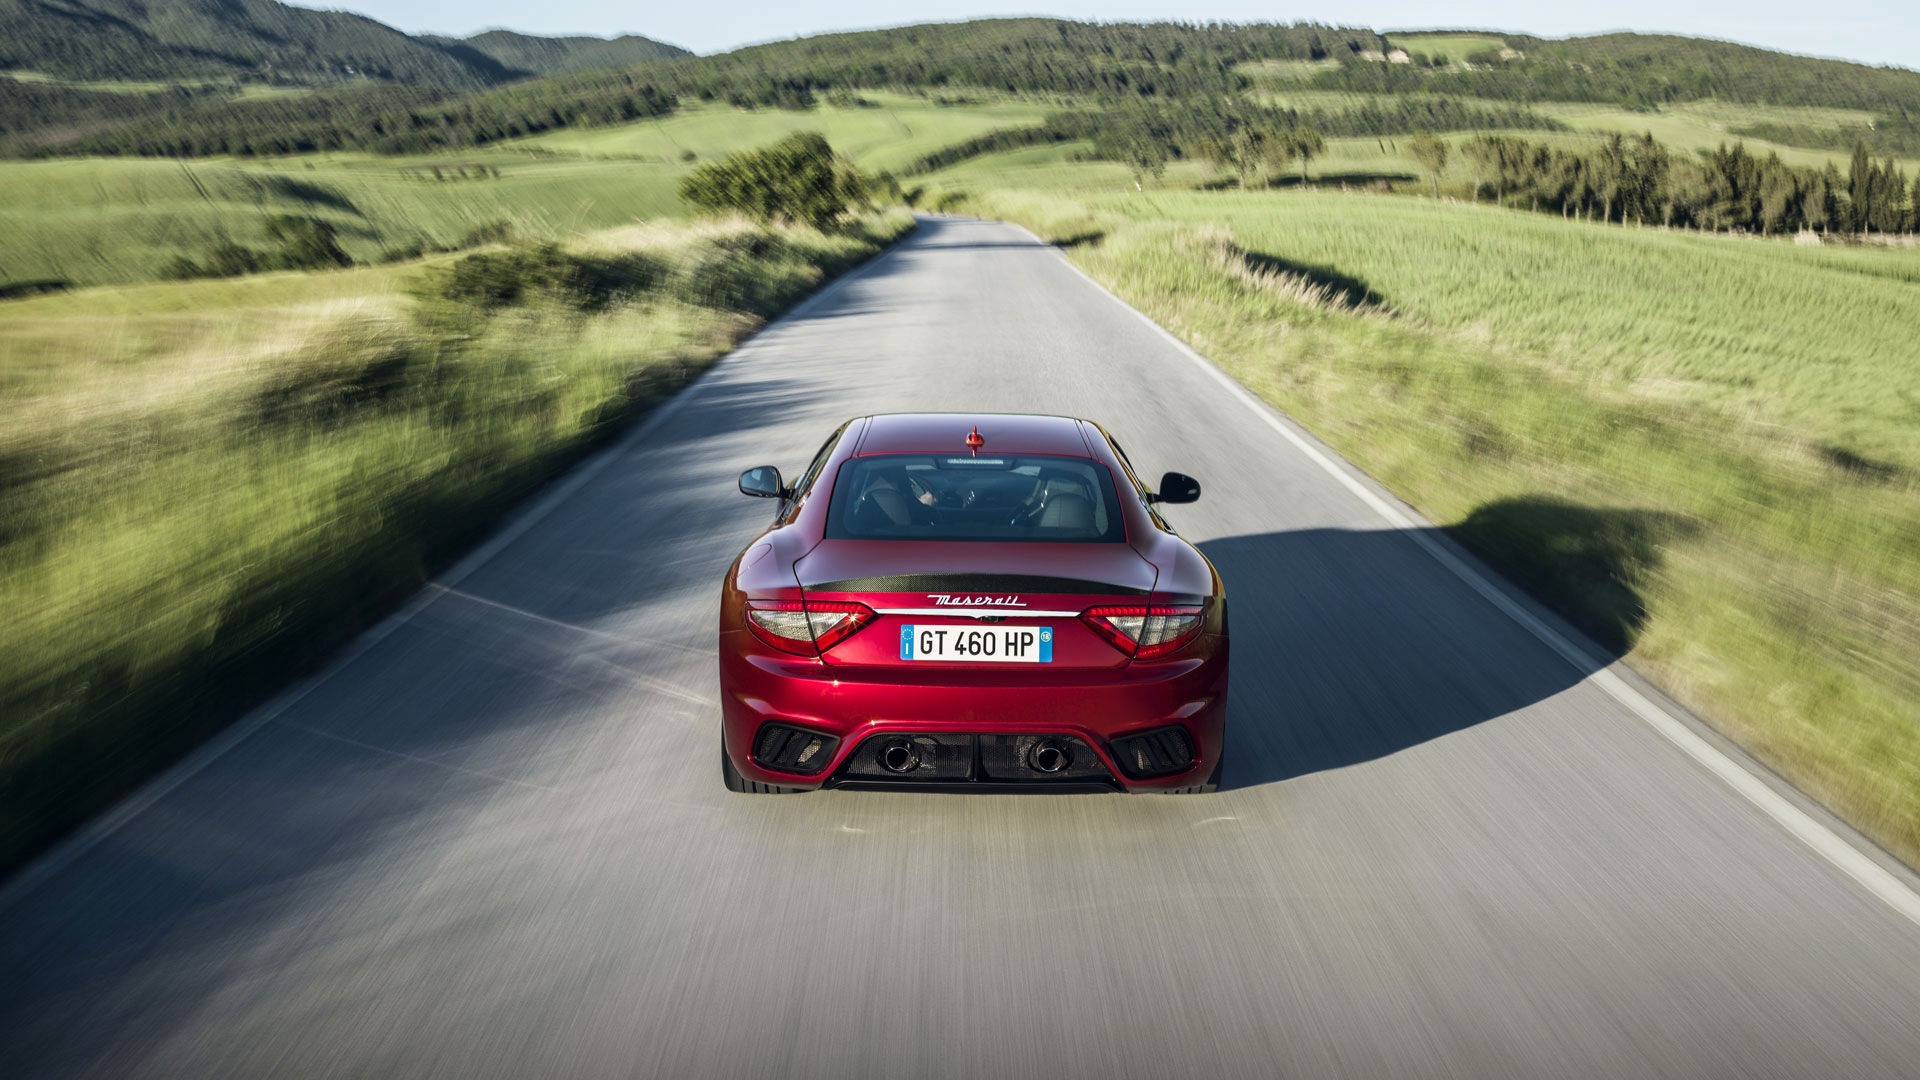 On the road: rear view of a red Maserati GranTurismo